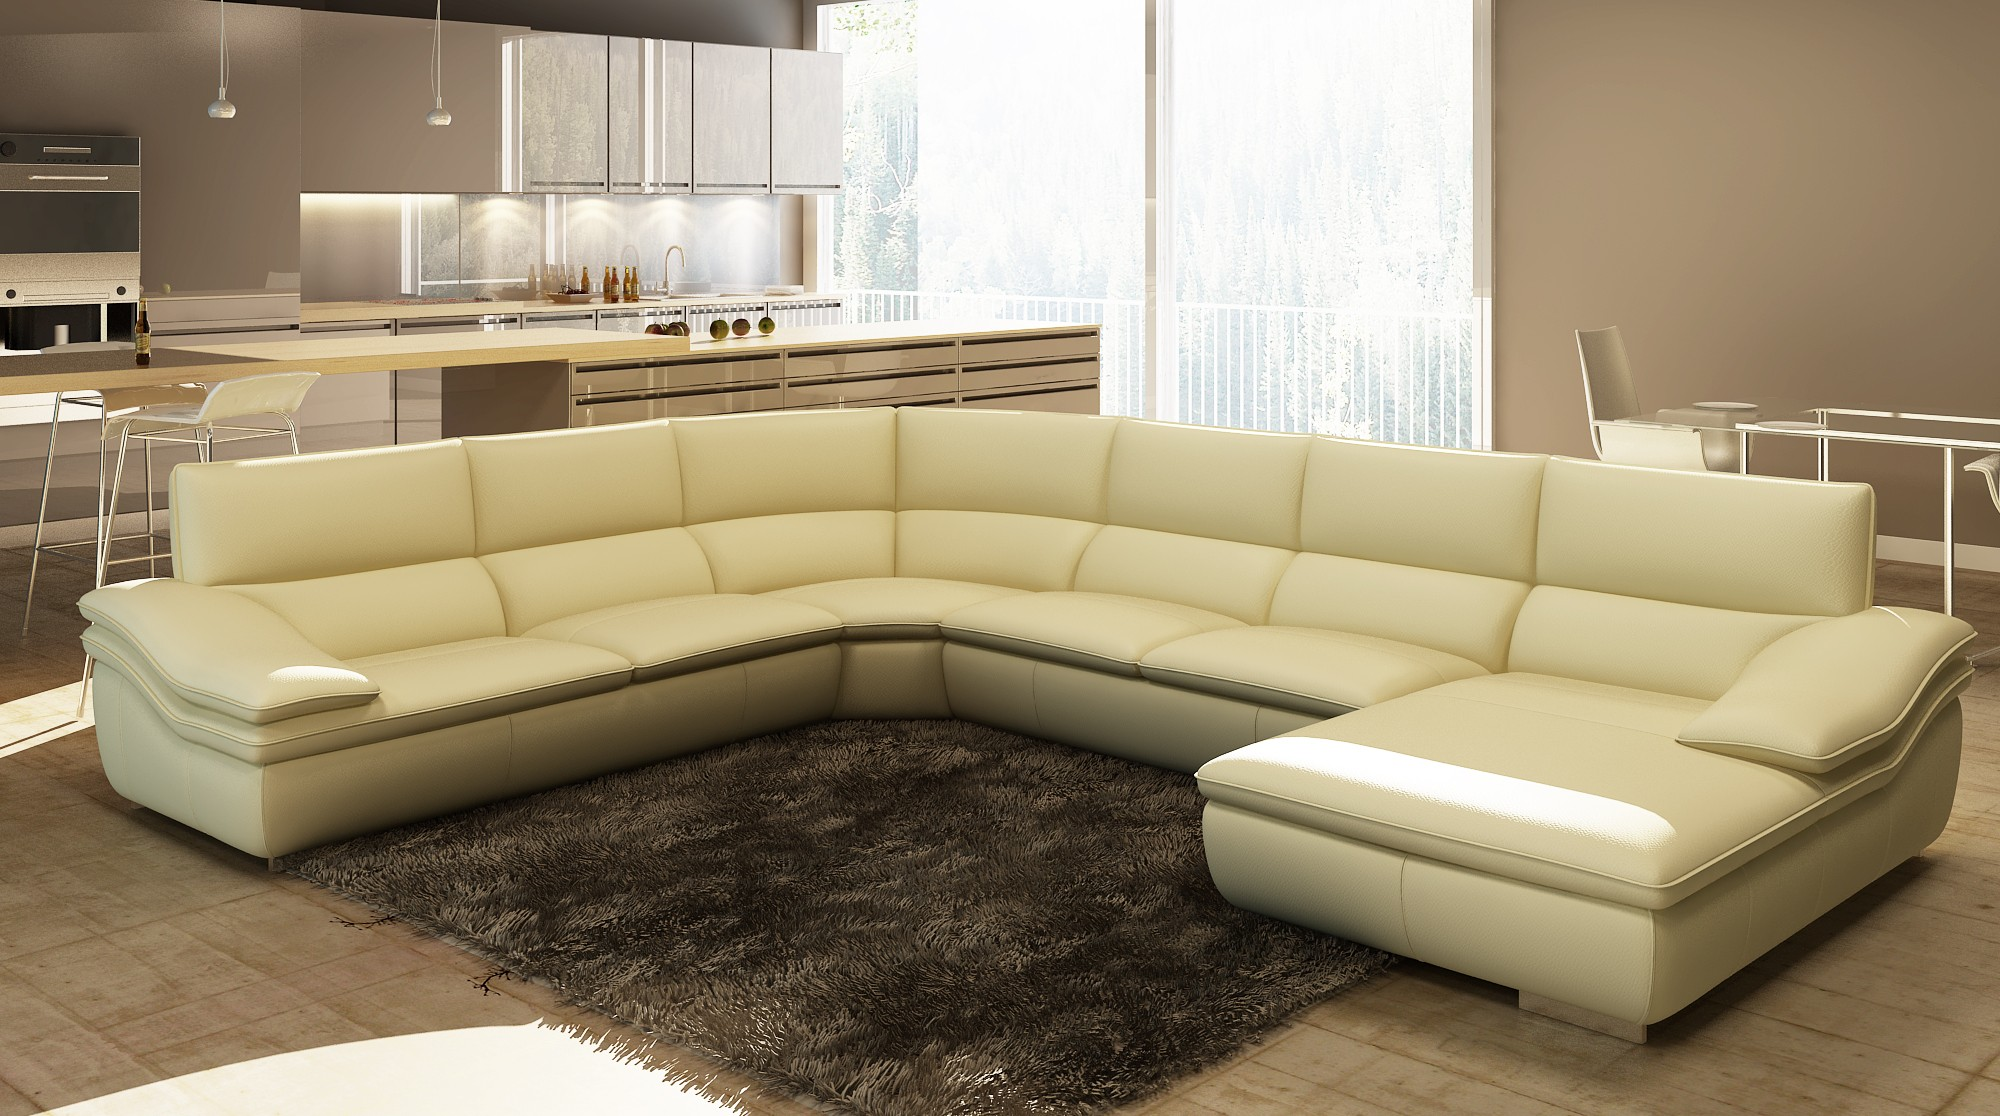 sofa : online sectional sofas - Sectionals, Sofas & Couches